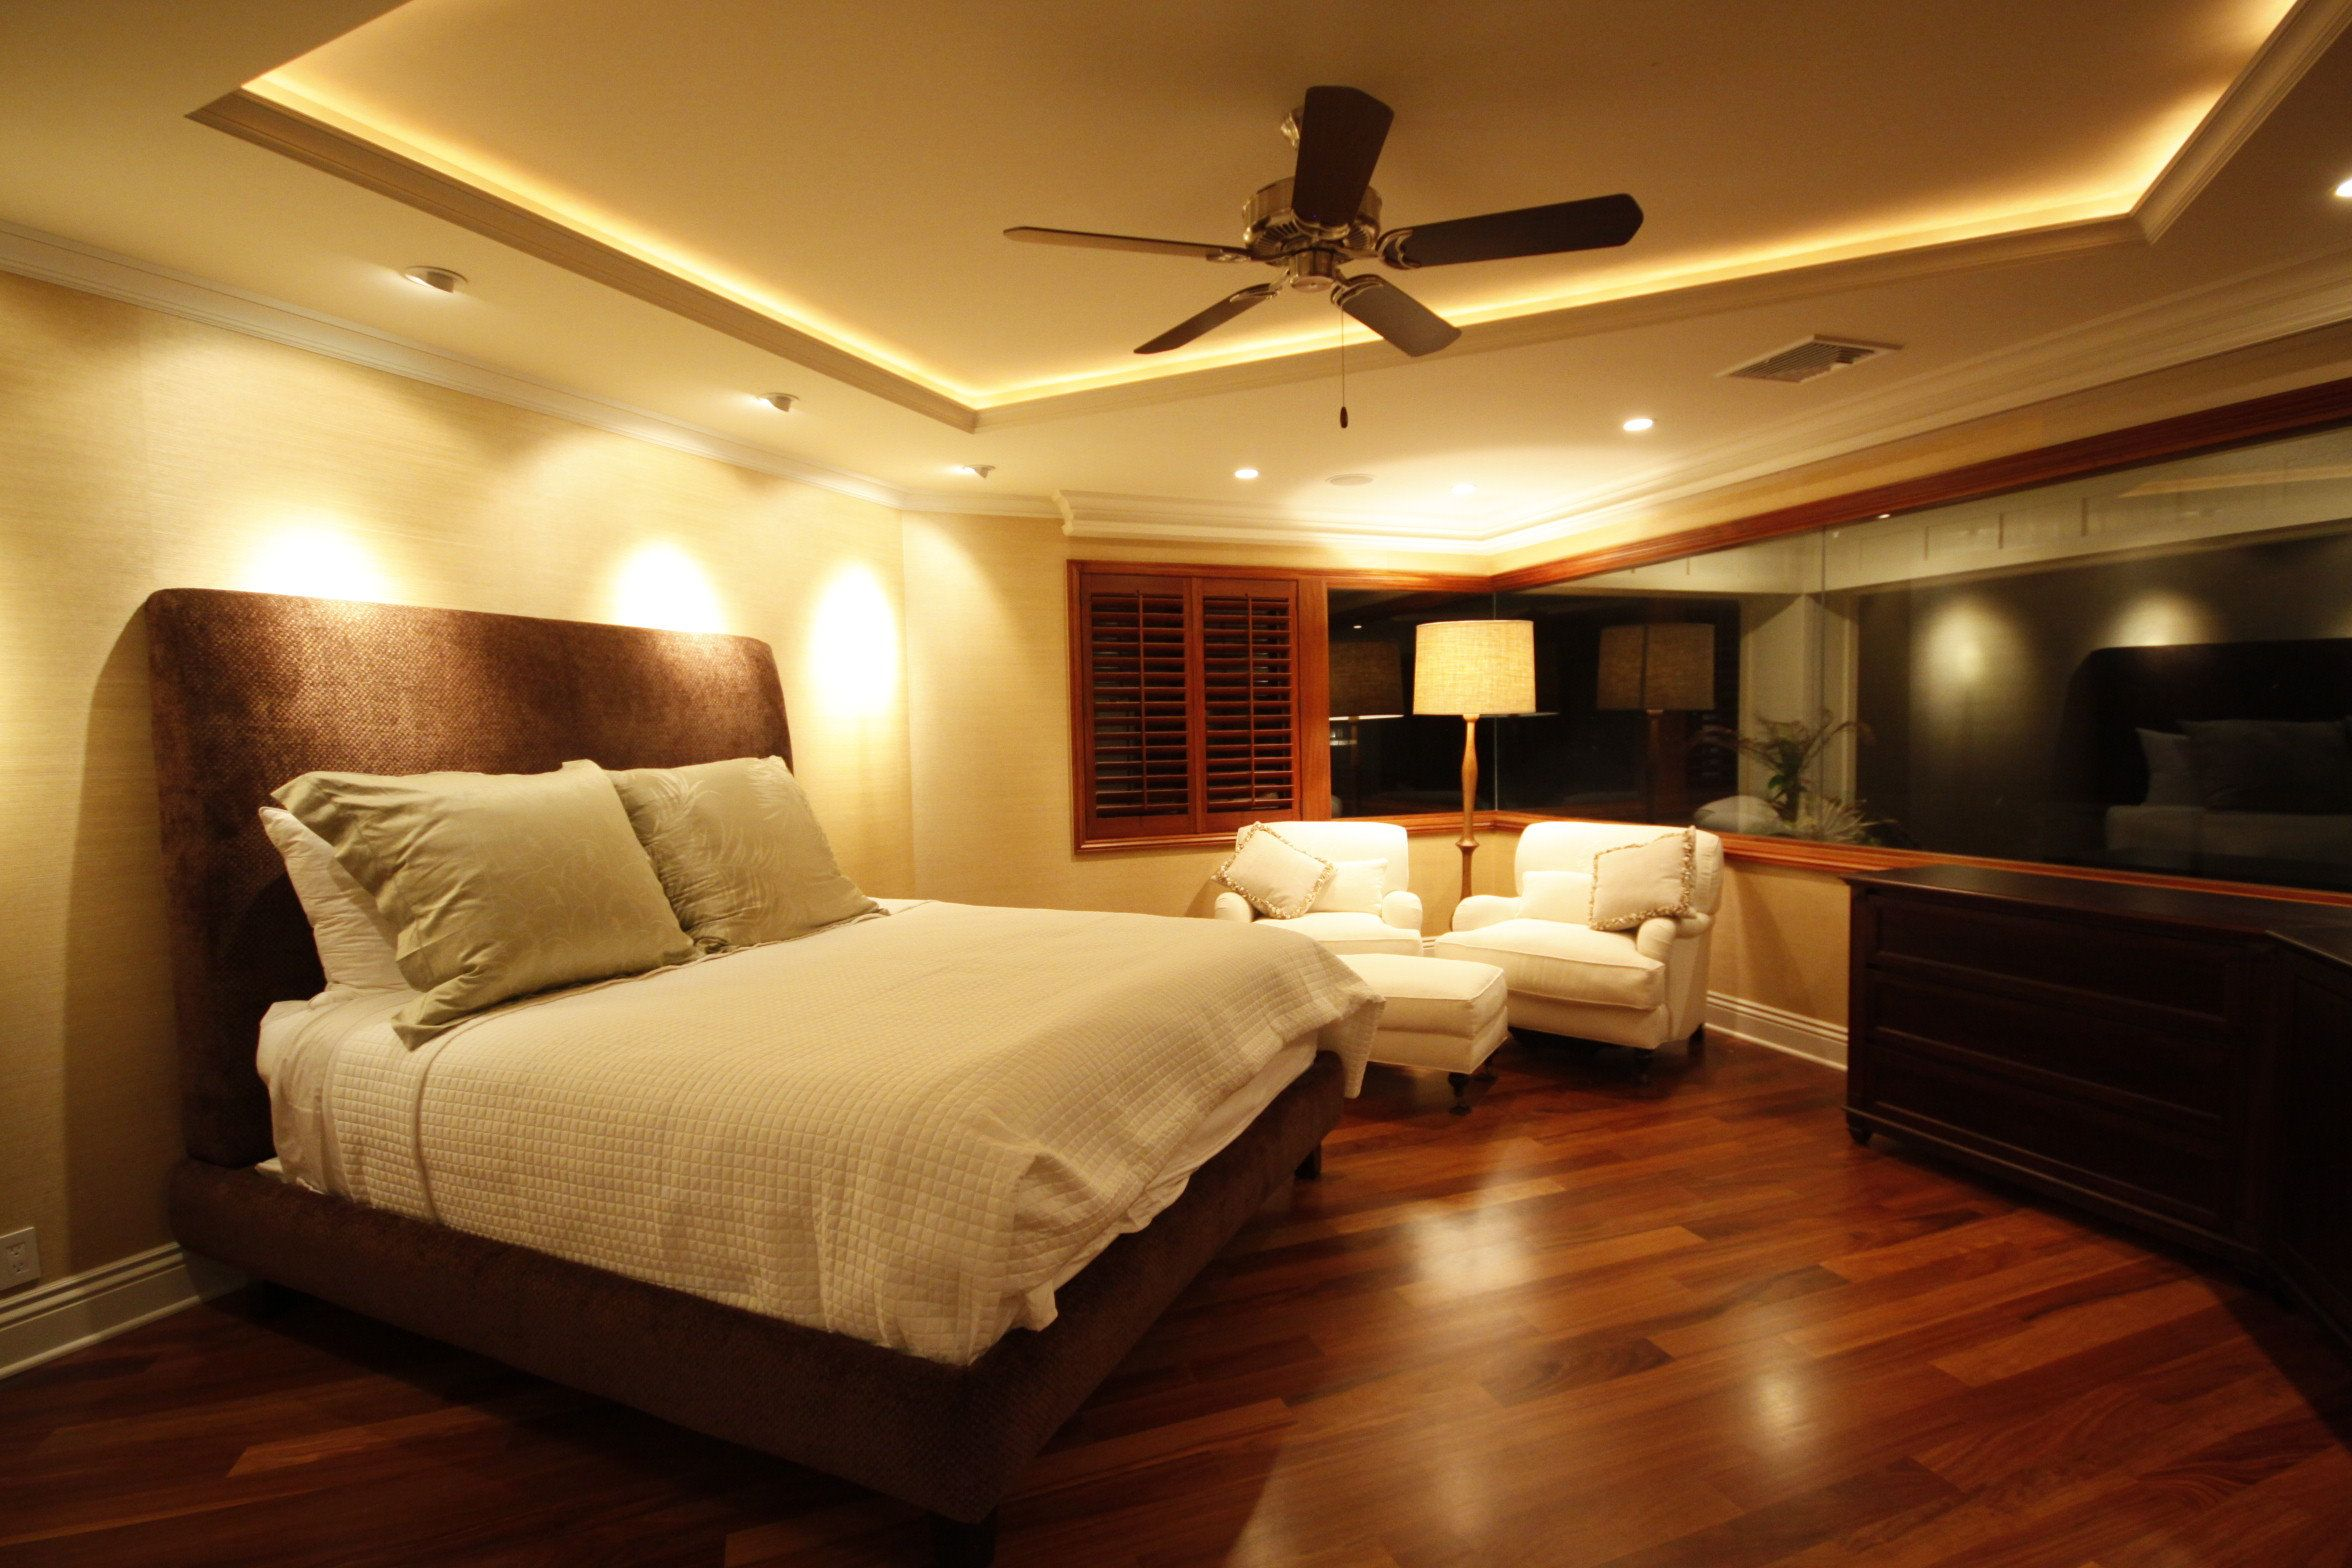 Appealing master bedroom modern decor with wooden floors Bedroom design lighting